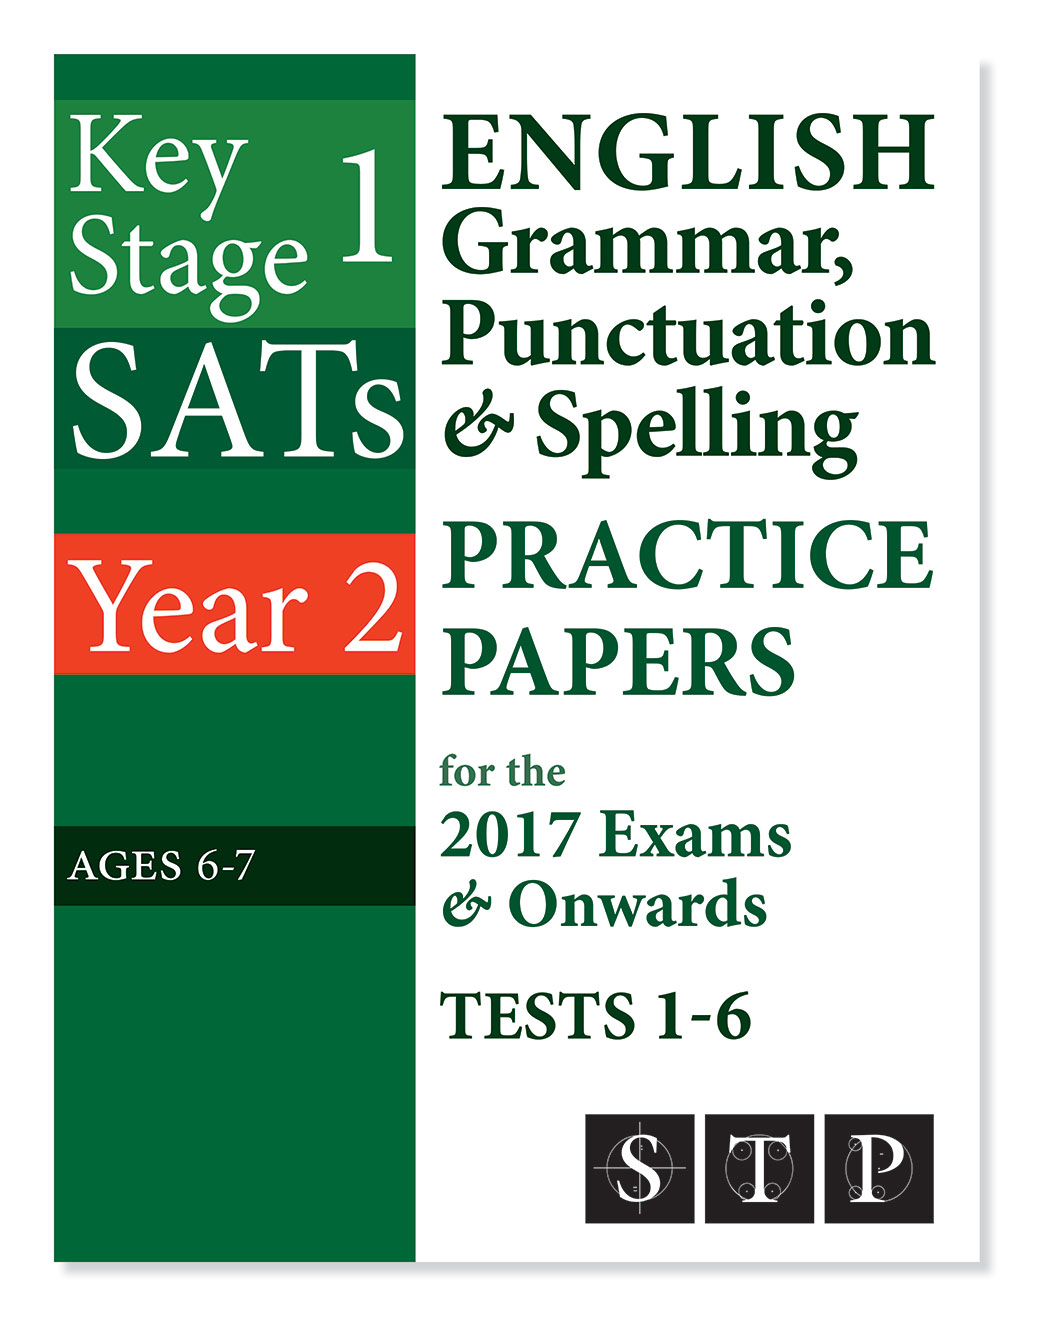 KS1 SATs English Grammar, Punctuation & Spelling Practice Papers for the 2017 Exams & Onwards Tests 1-10